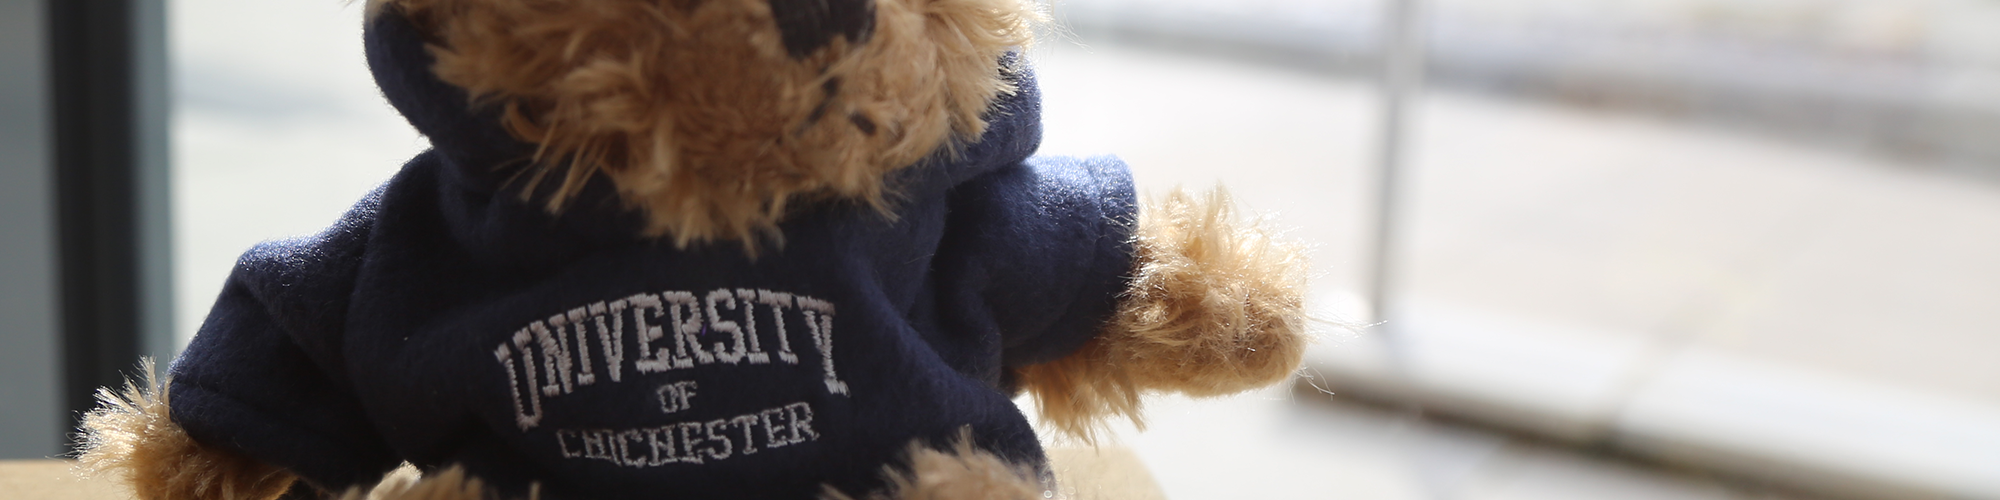 We are delighted to be able to offer a high quality range of University of Chichester merchandise. Whether you're a current student or Alumni, there's a great range of gifts available as a little memento from your time at Chichester!